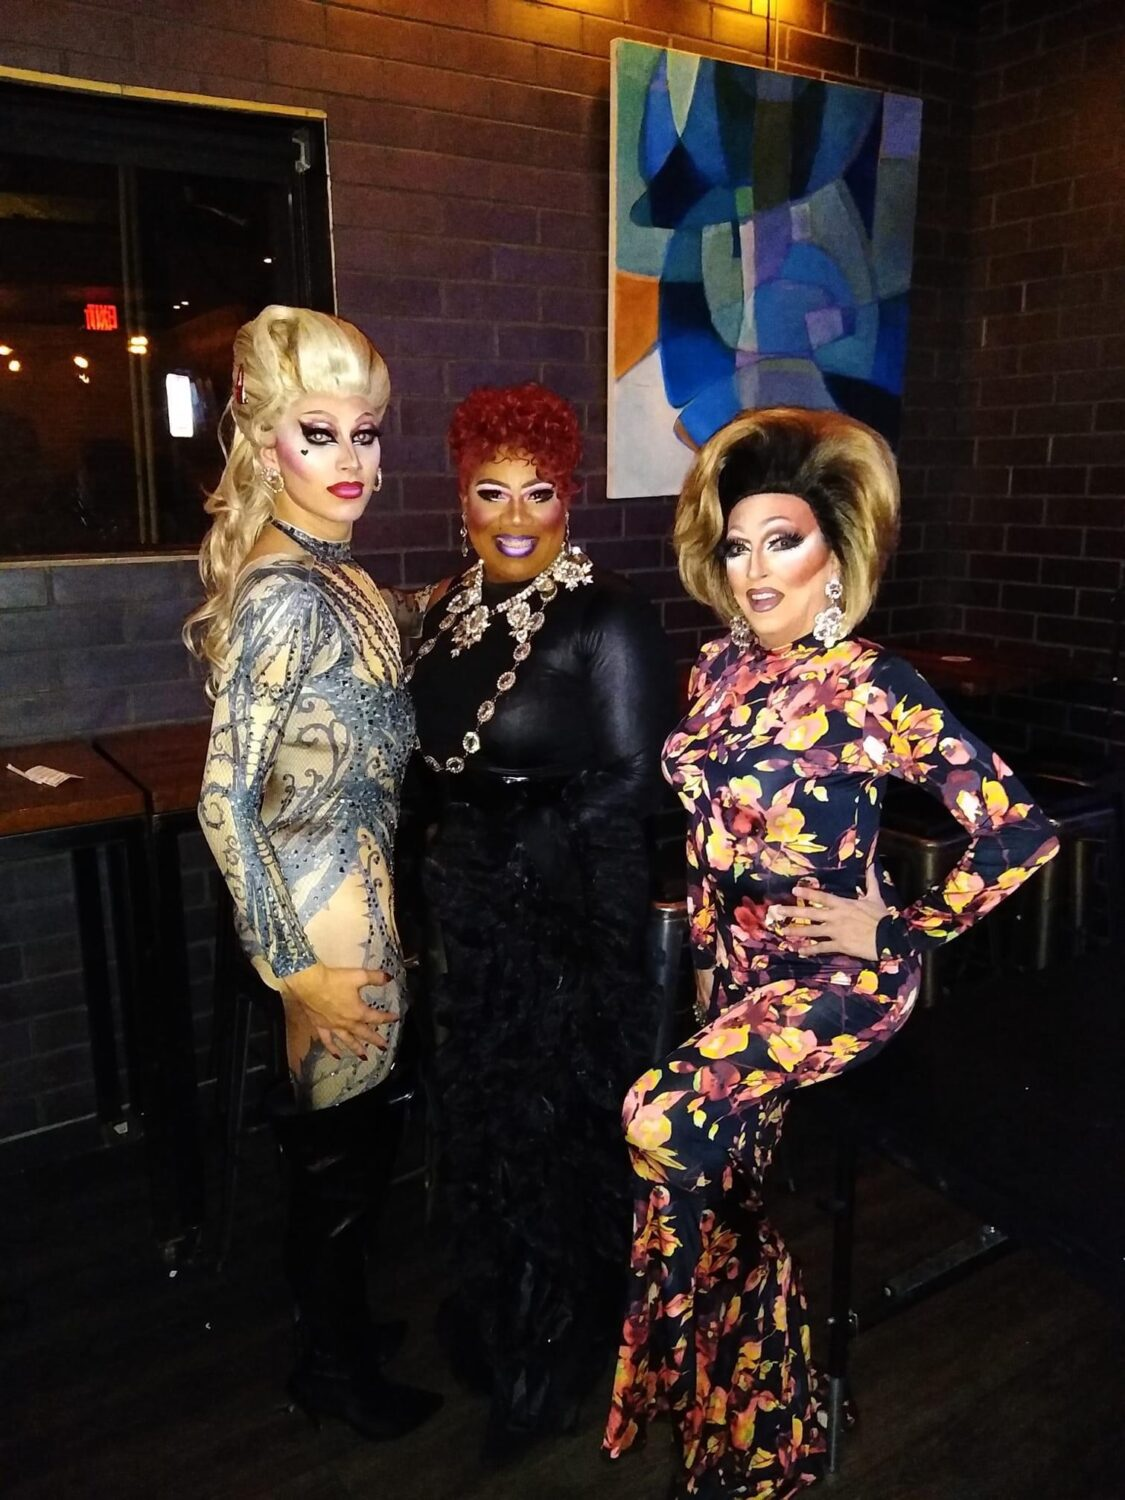 Blonde Vanity, Vee Love and Samantha Rollins at Union Cafe (Columbus, Ohio) | September 2021